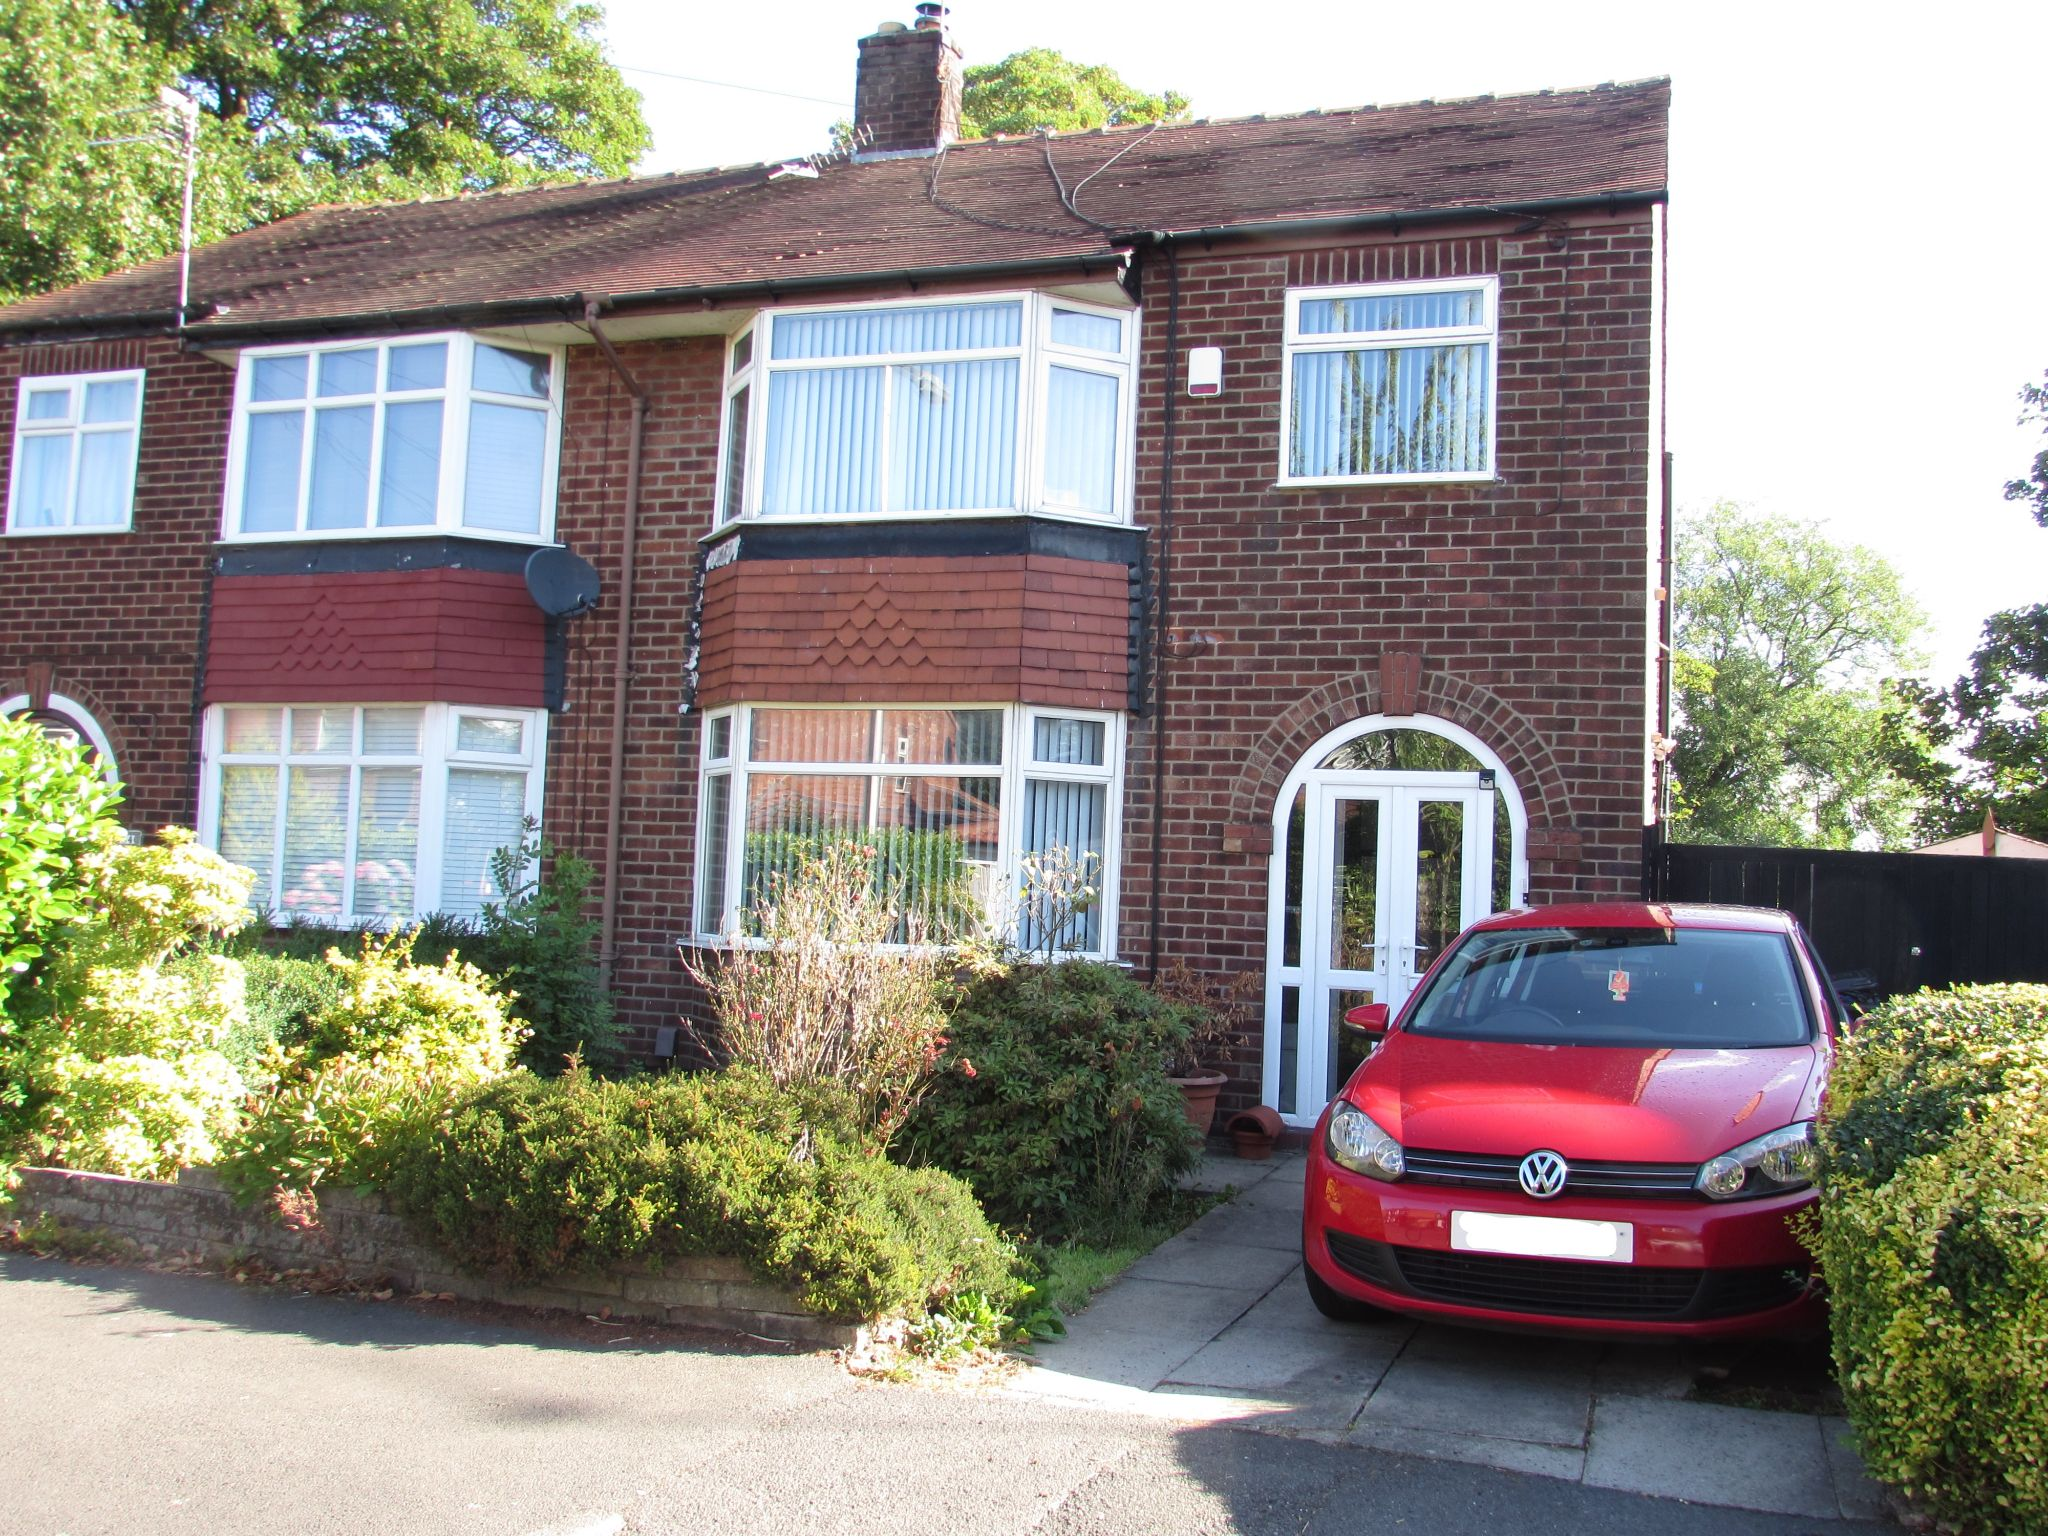 3 Bed Semi-detached House For Sale - Main Image